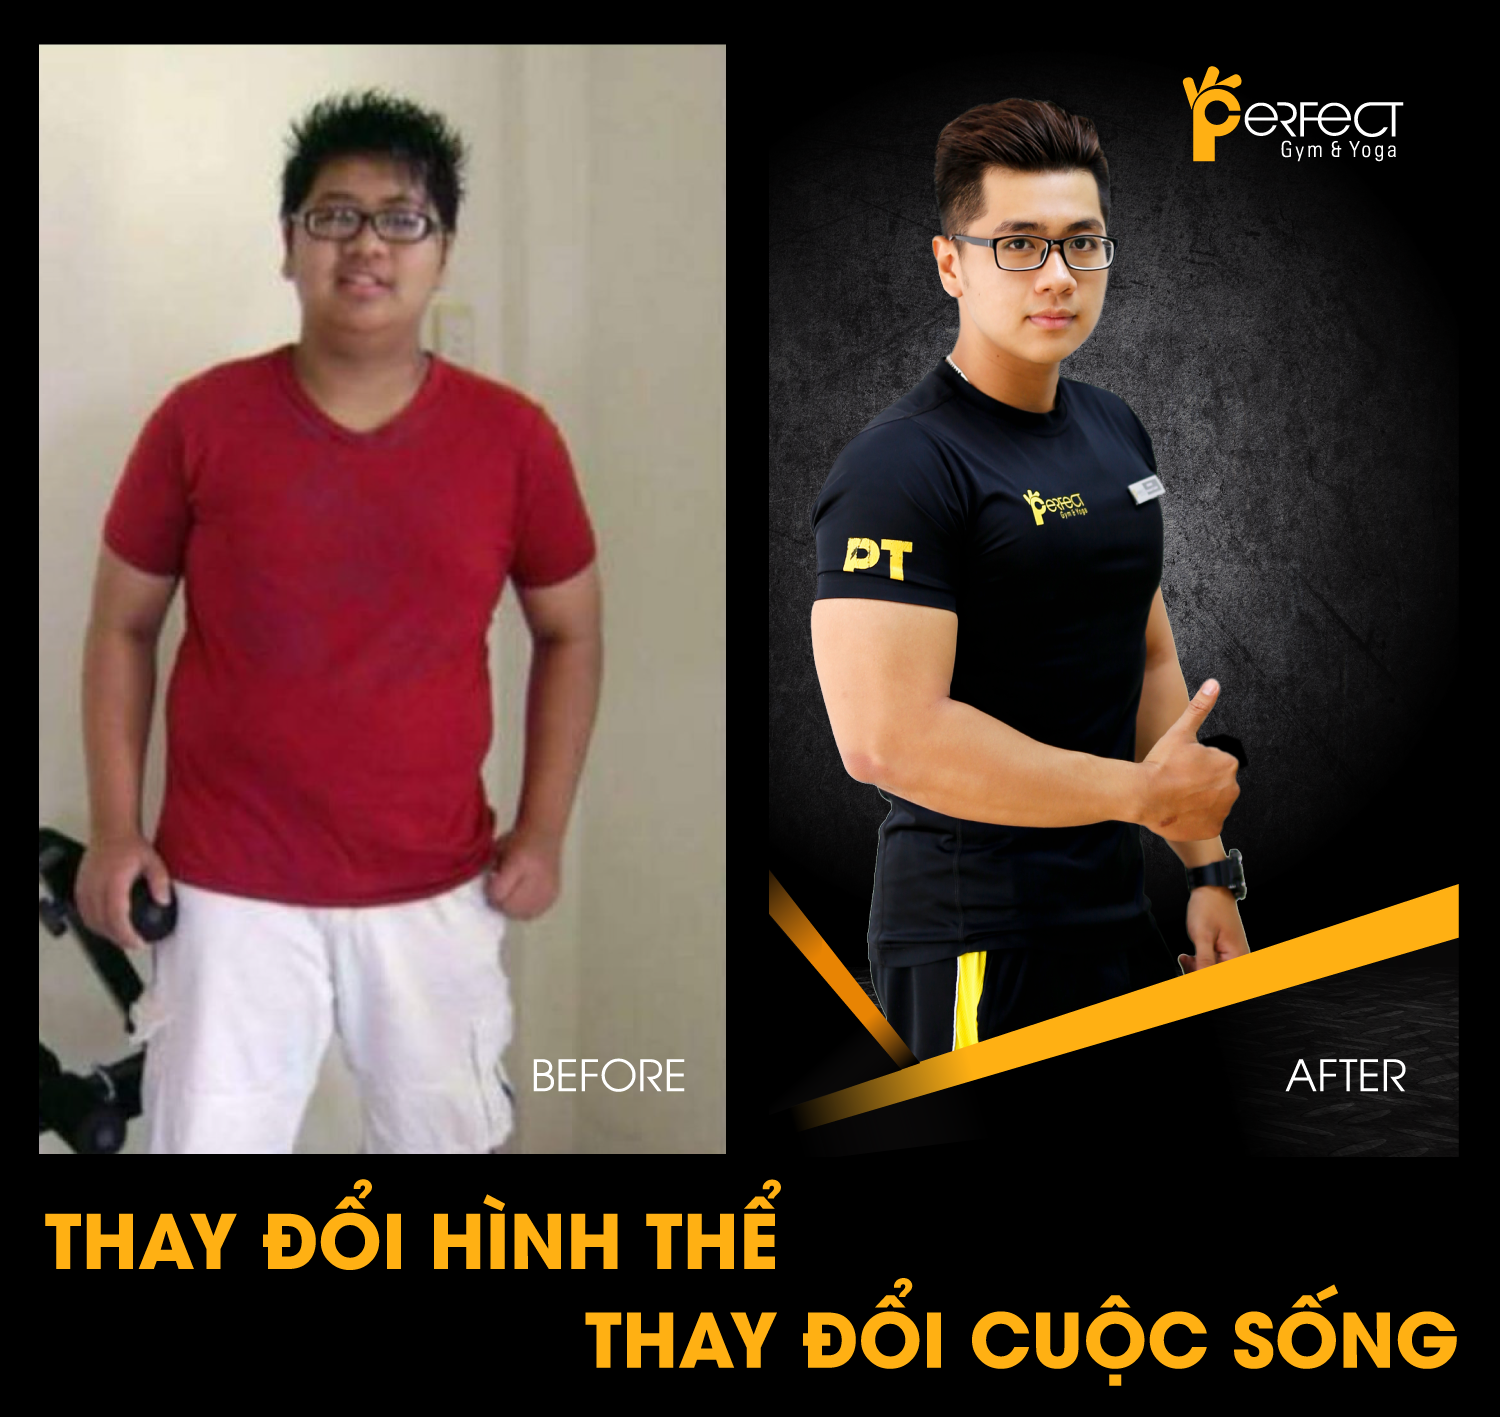 phong-tap-perfect-gym-and-yoga (3)